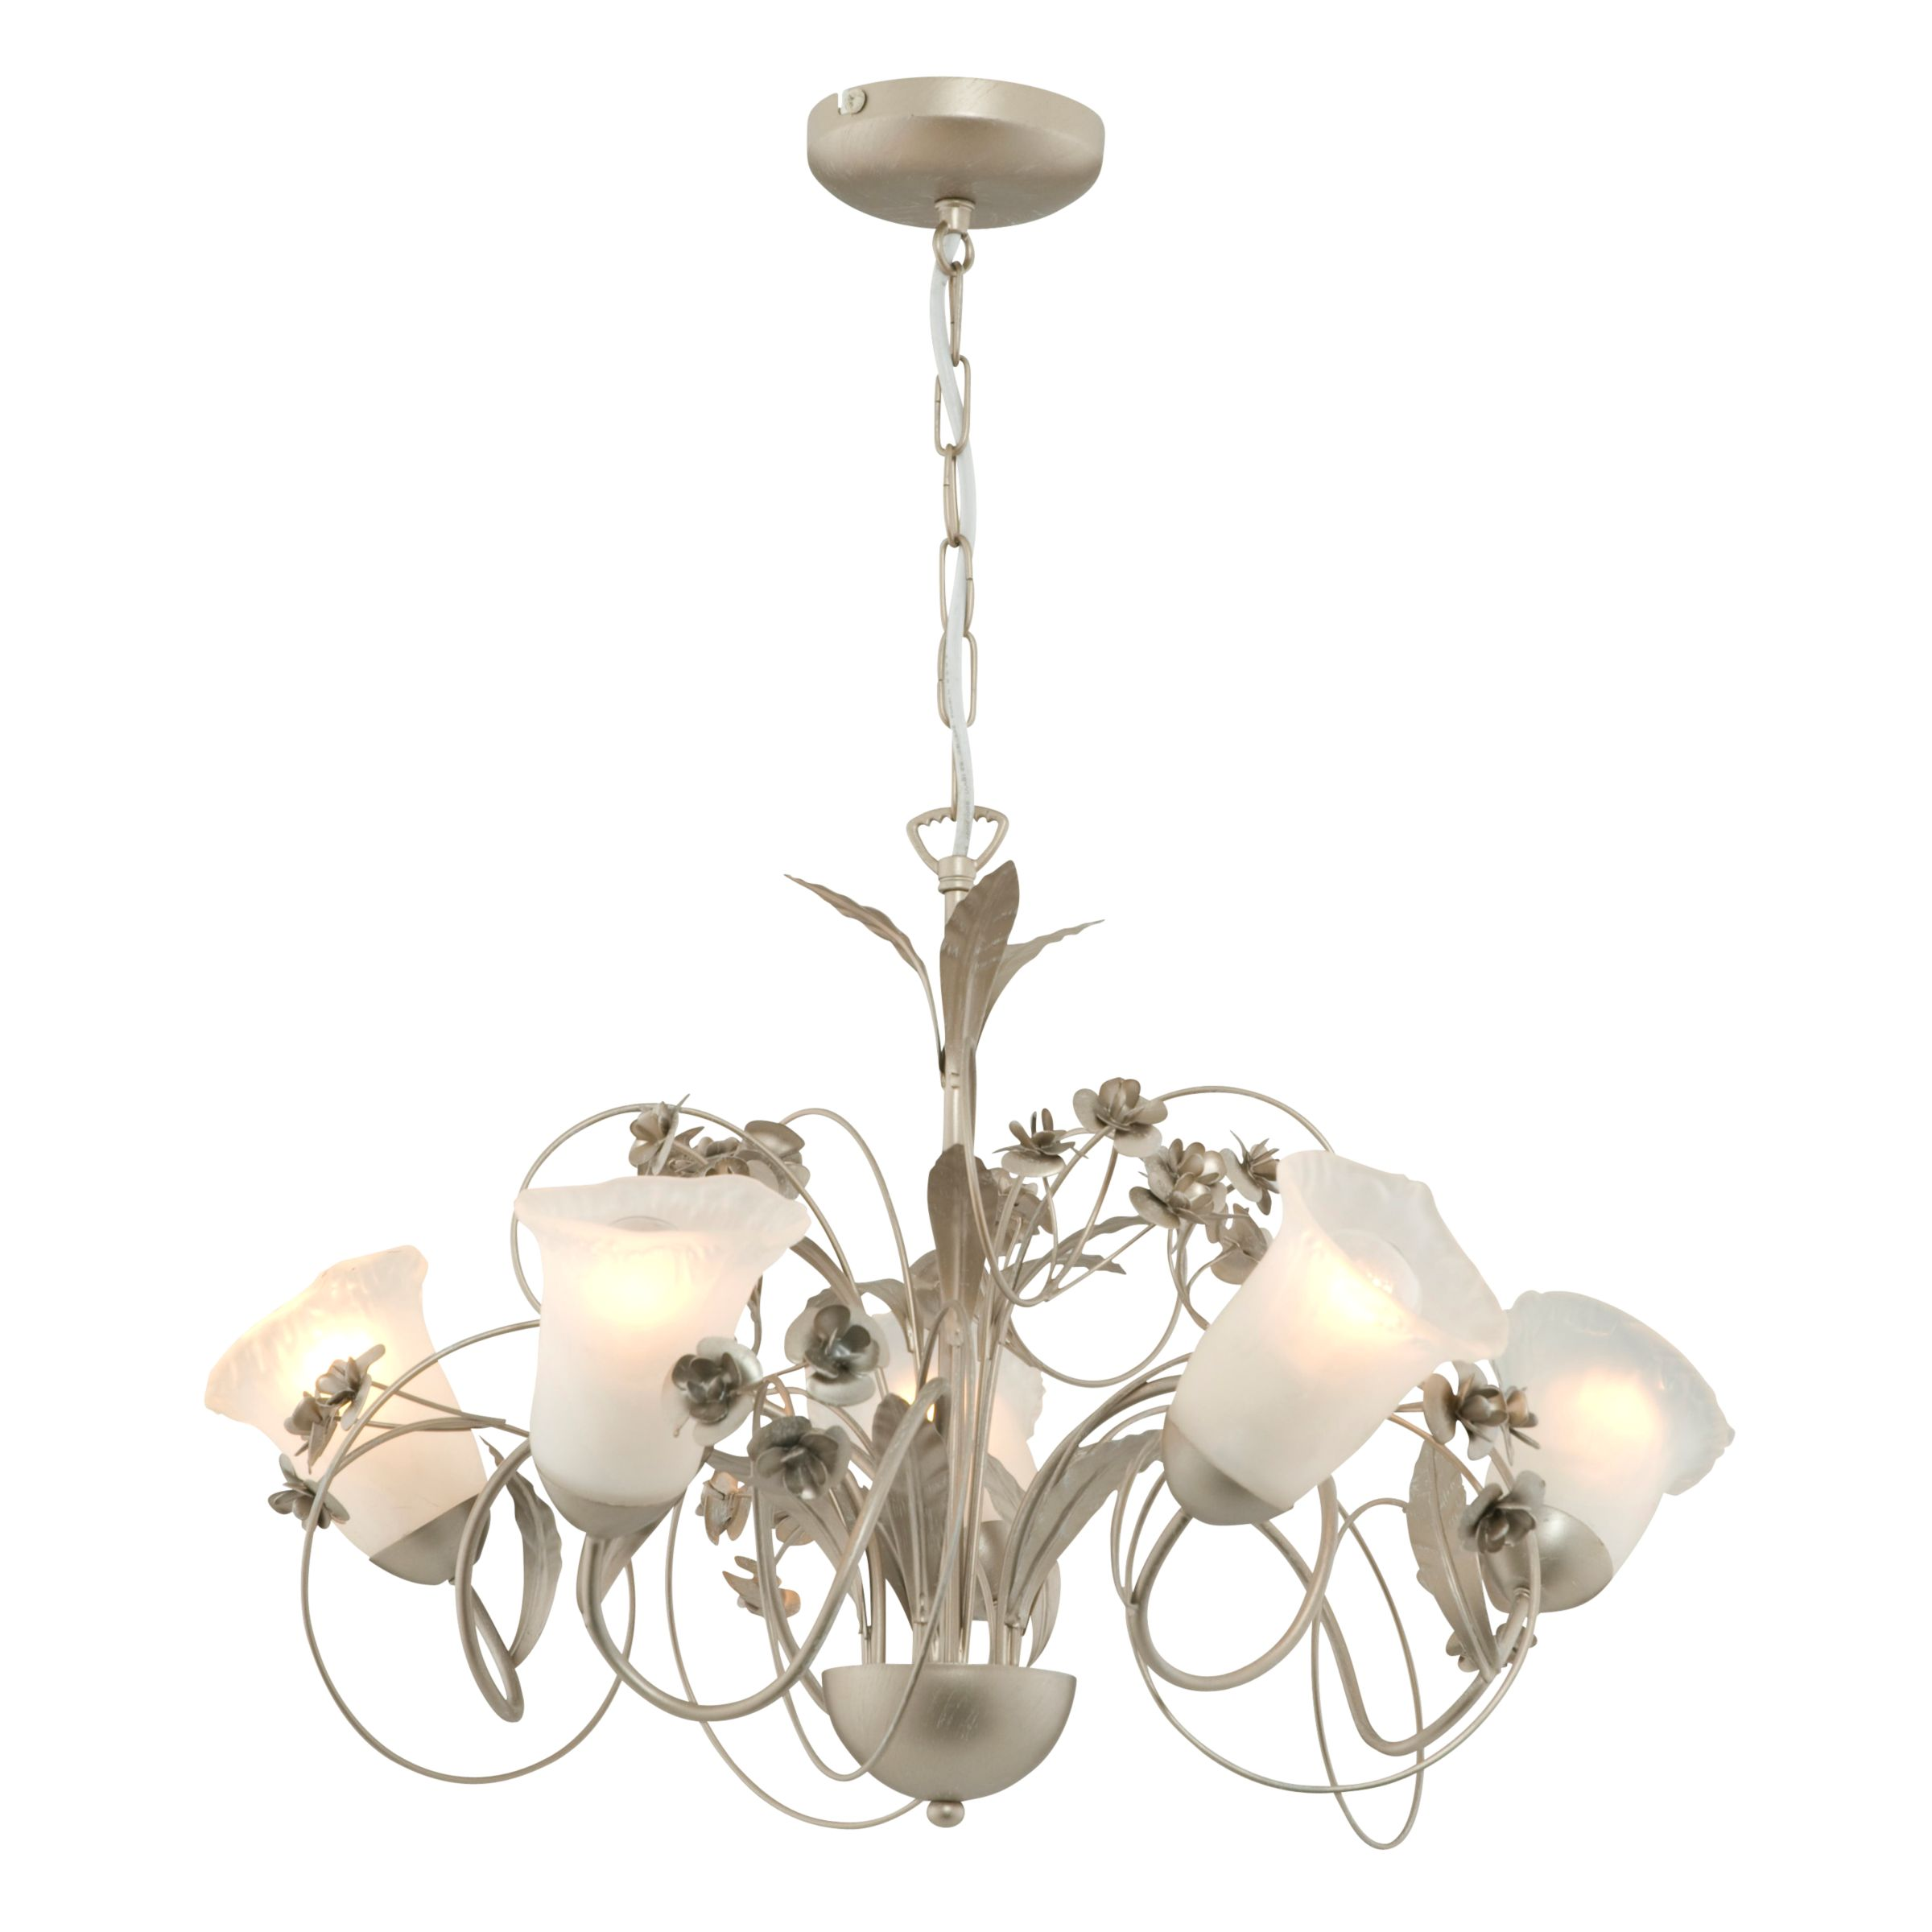 Ceiling Light 5 Arm Chrome : This arm ceiling light has a brushed chrome finish with